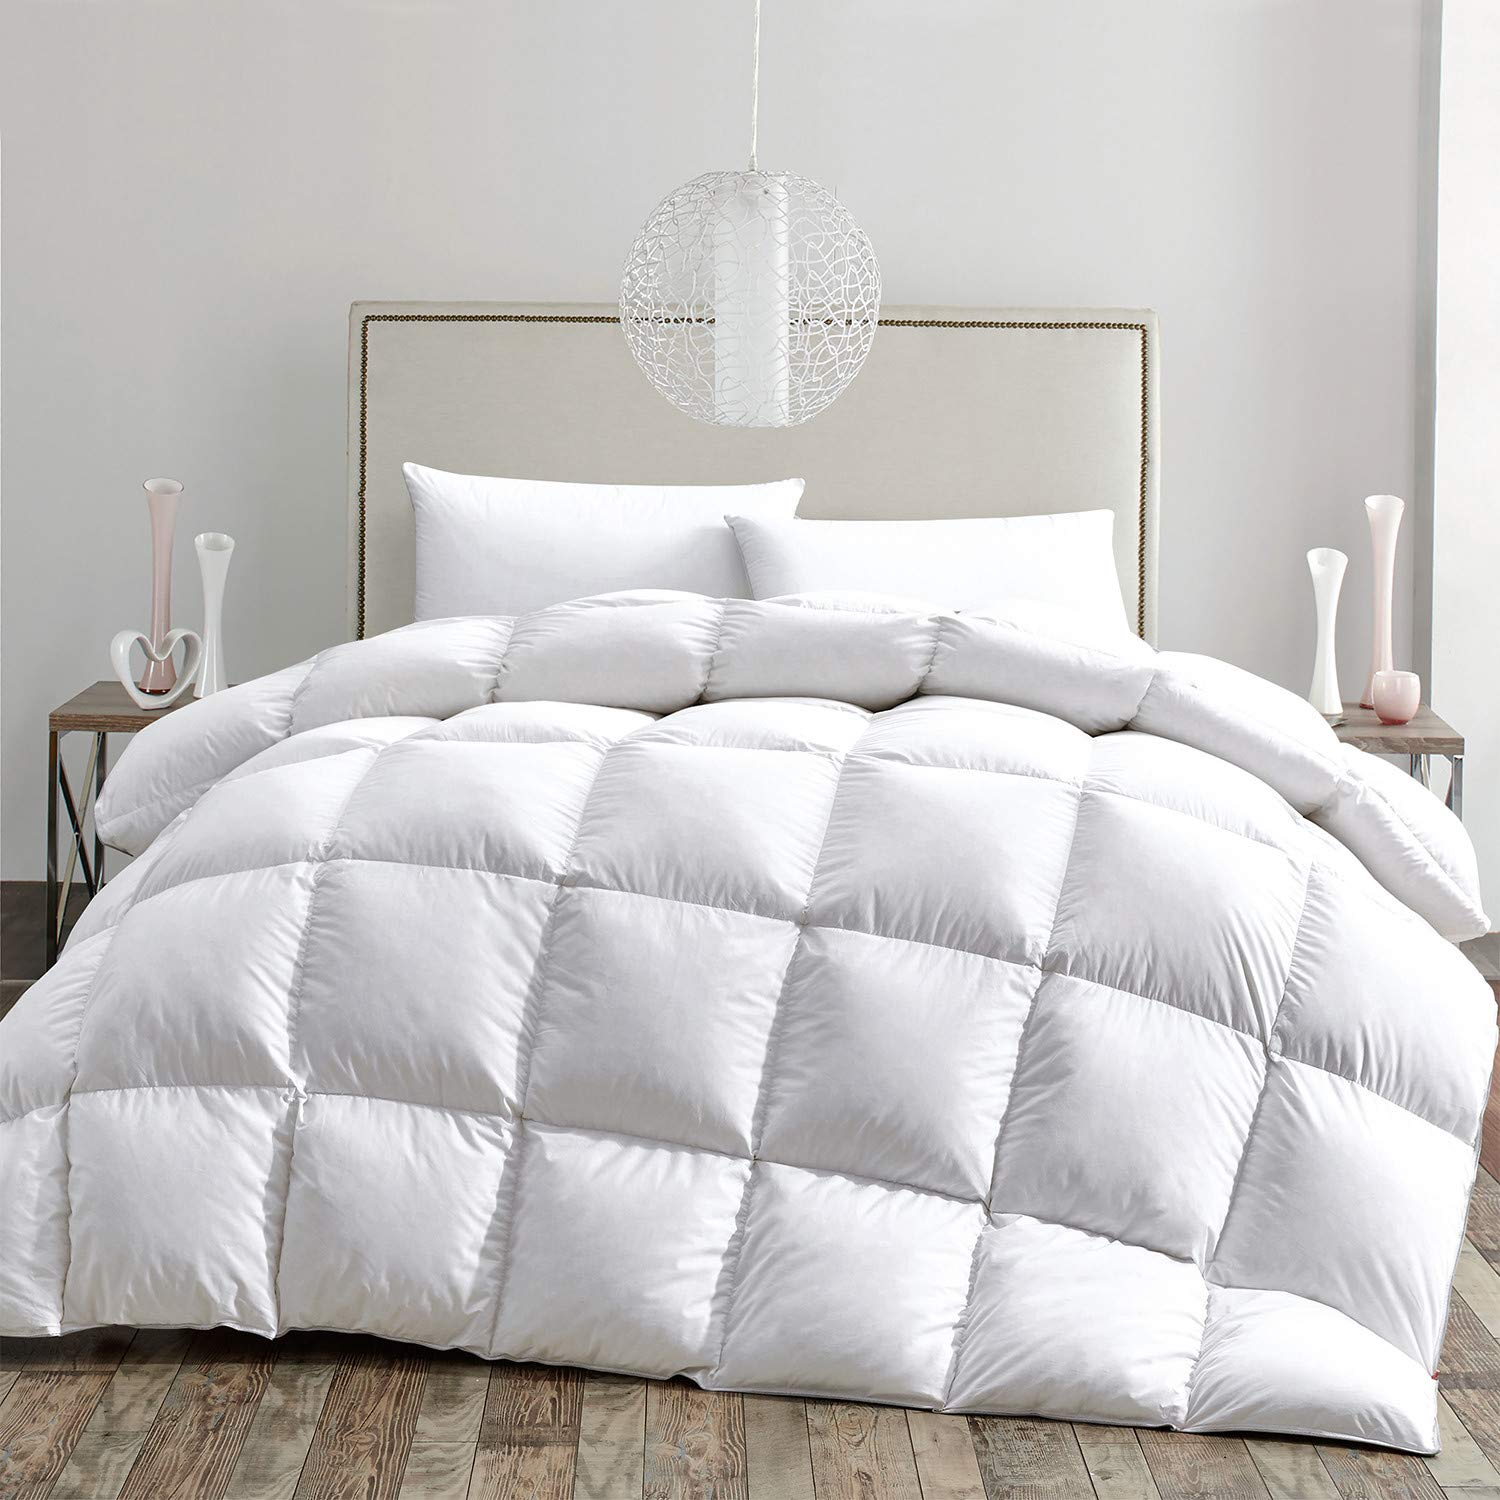 HOMBYS Luxurious Lightweight White Goose Feather Comforter Down Duvet Insert King/Cal King Size Hypo-allergenic 70oz Fill Weight 100% Cotton Cover Down Proof with Corner Tabs (King,White)